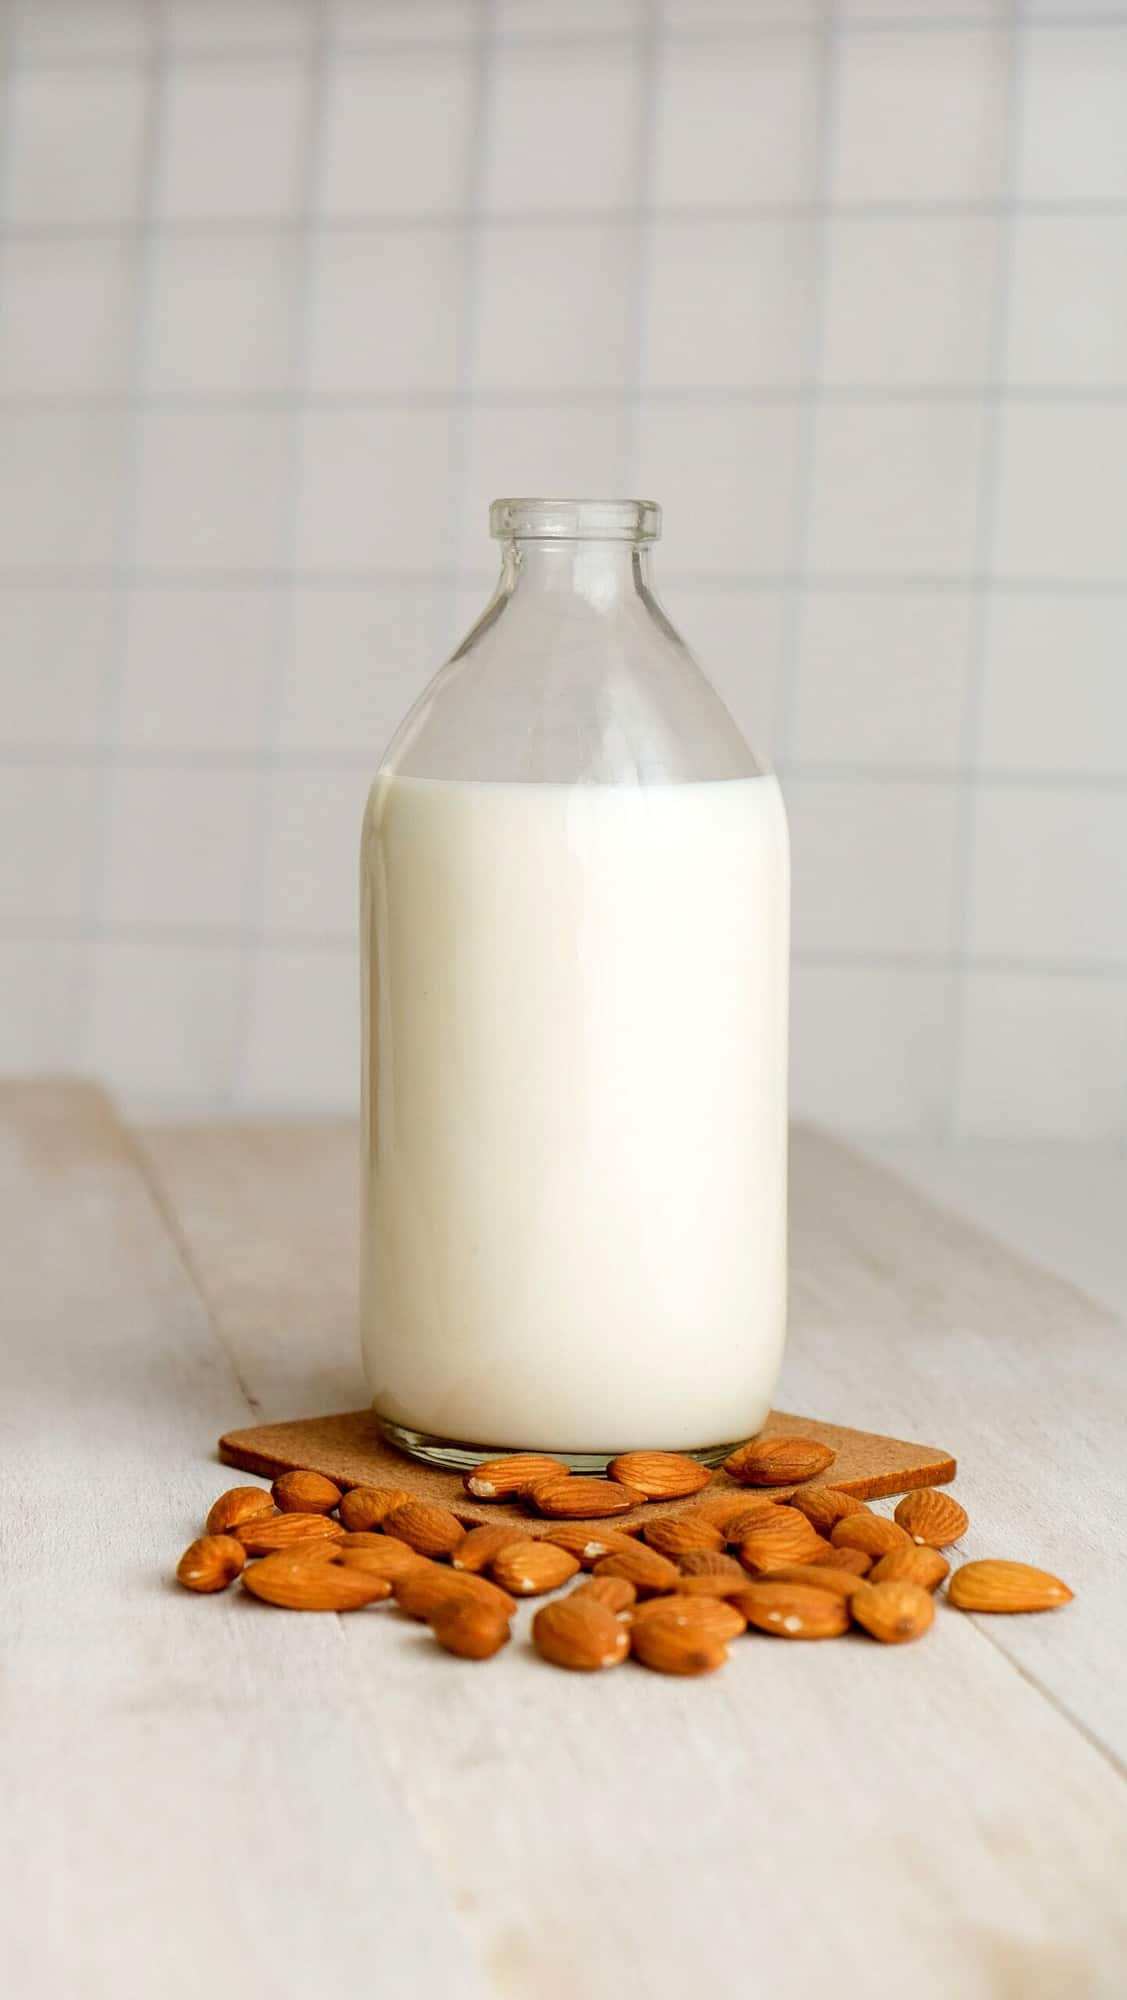 A bottle of almond milk with almonds scattered around it.